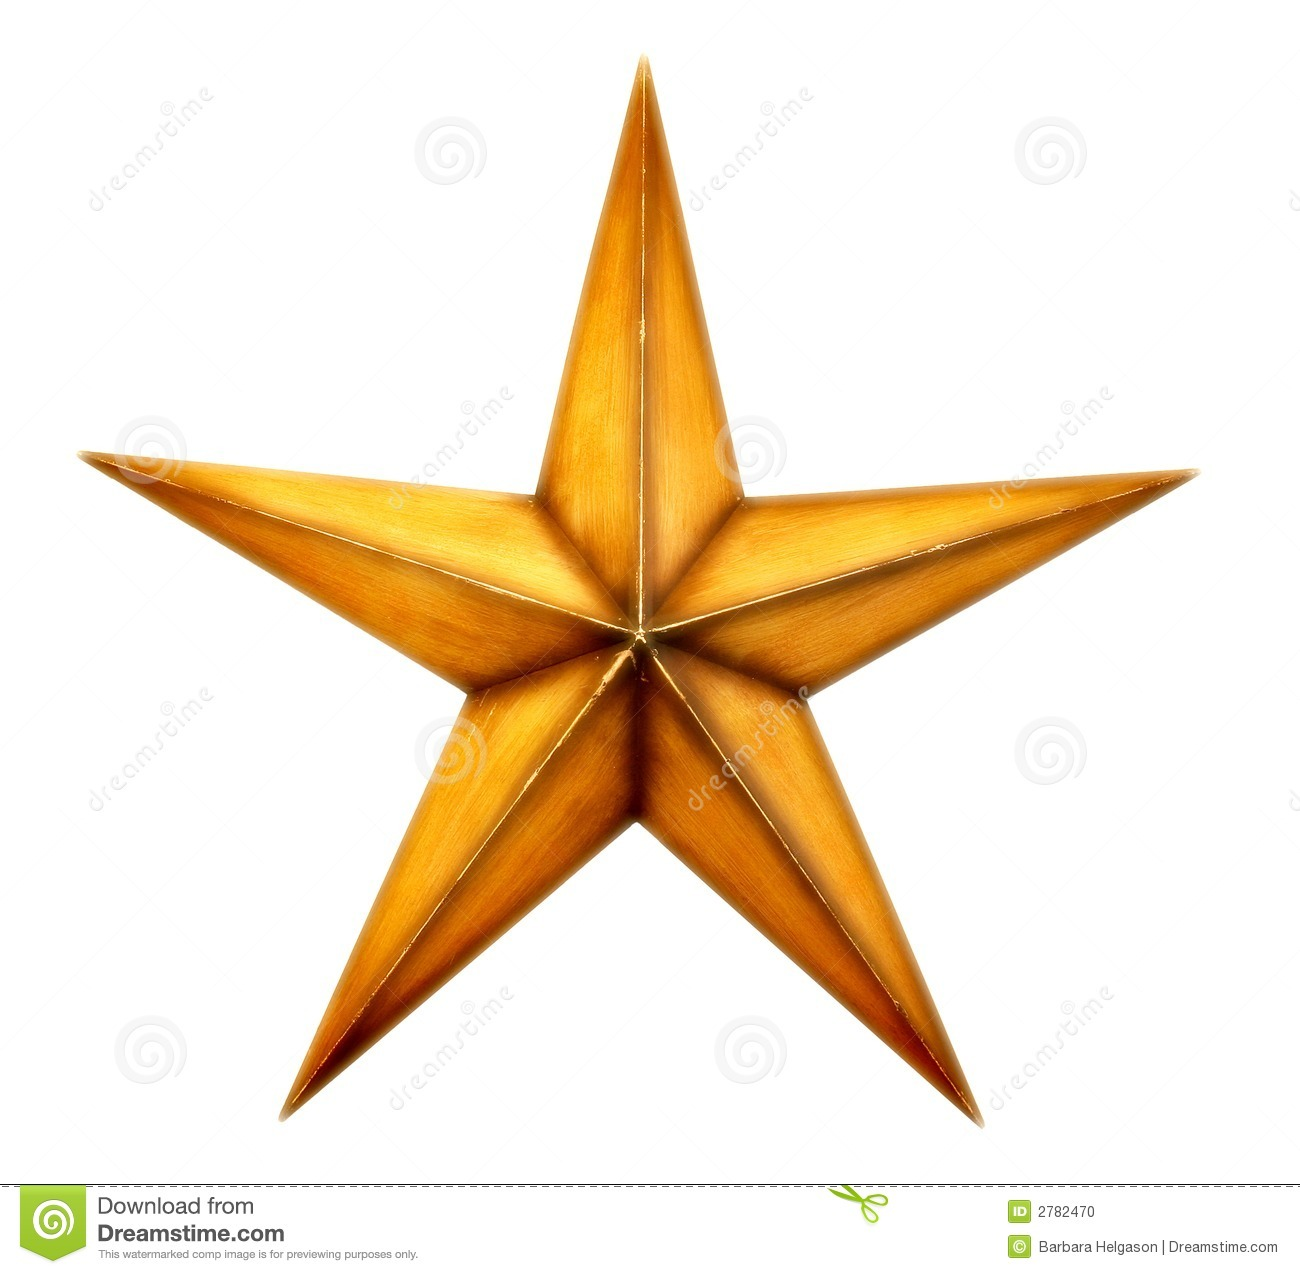 Christmas Star Images Clip Art.Moravian Christmas Star Clipart 20 Free Cliparts Download